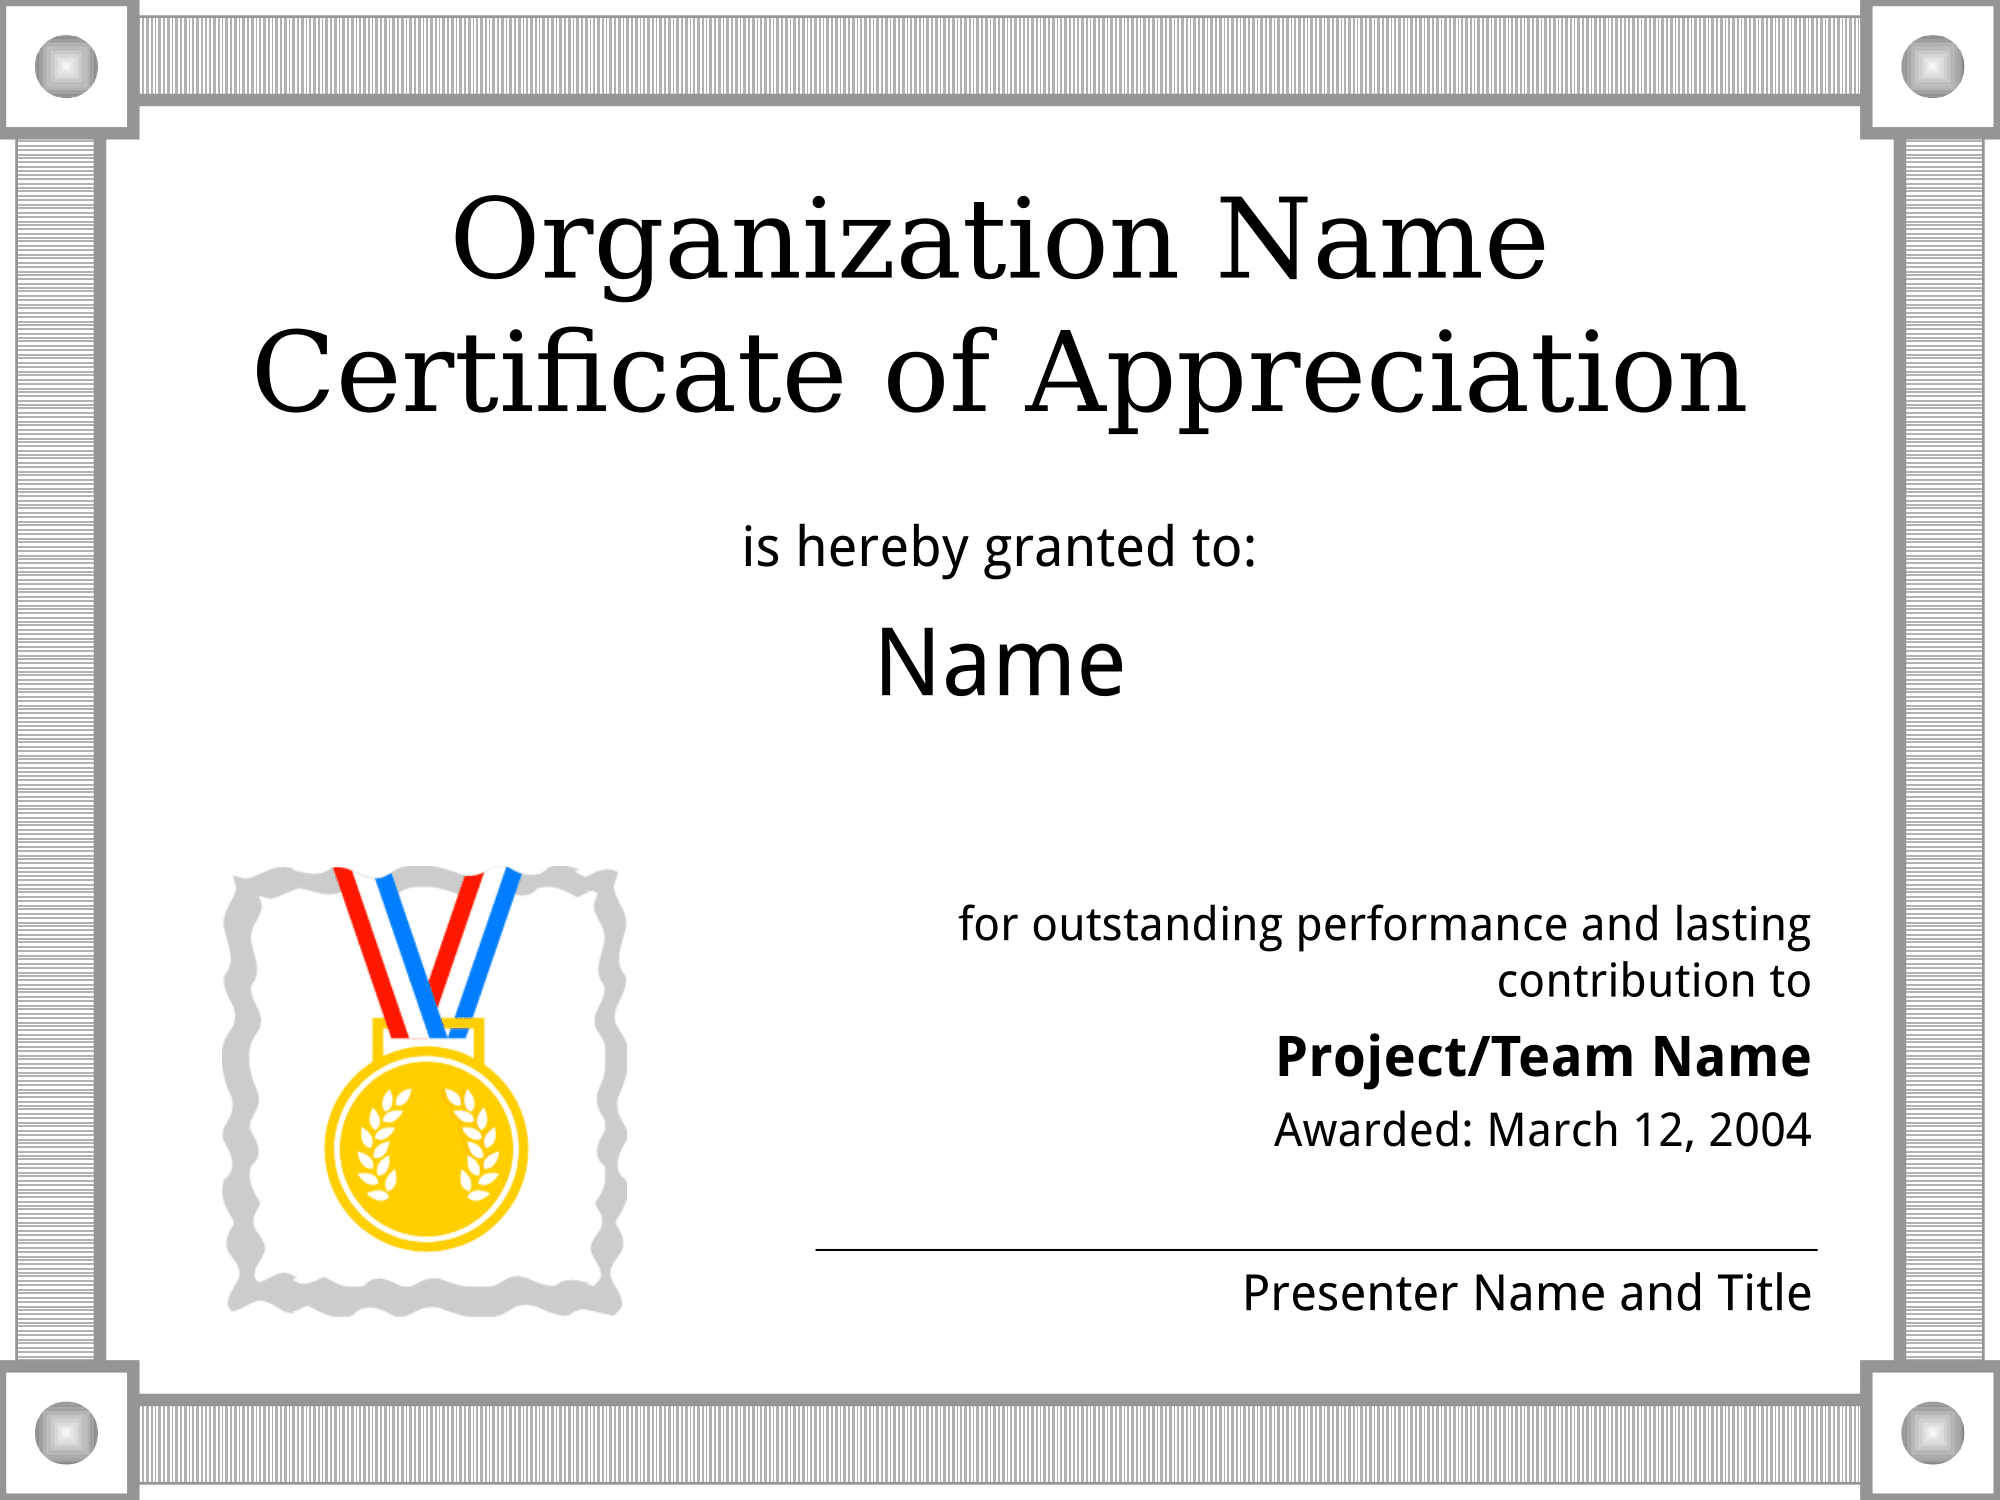 Certificate of appreciation templates free download electrical pie certificate of appreciation sample template get a free download certificate appreciation sample template get free download yadclub Choice Image